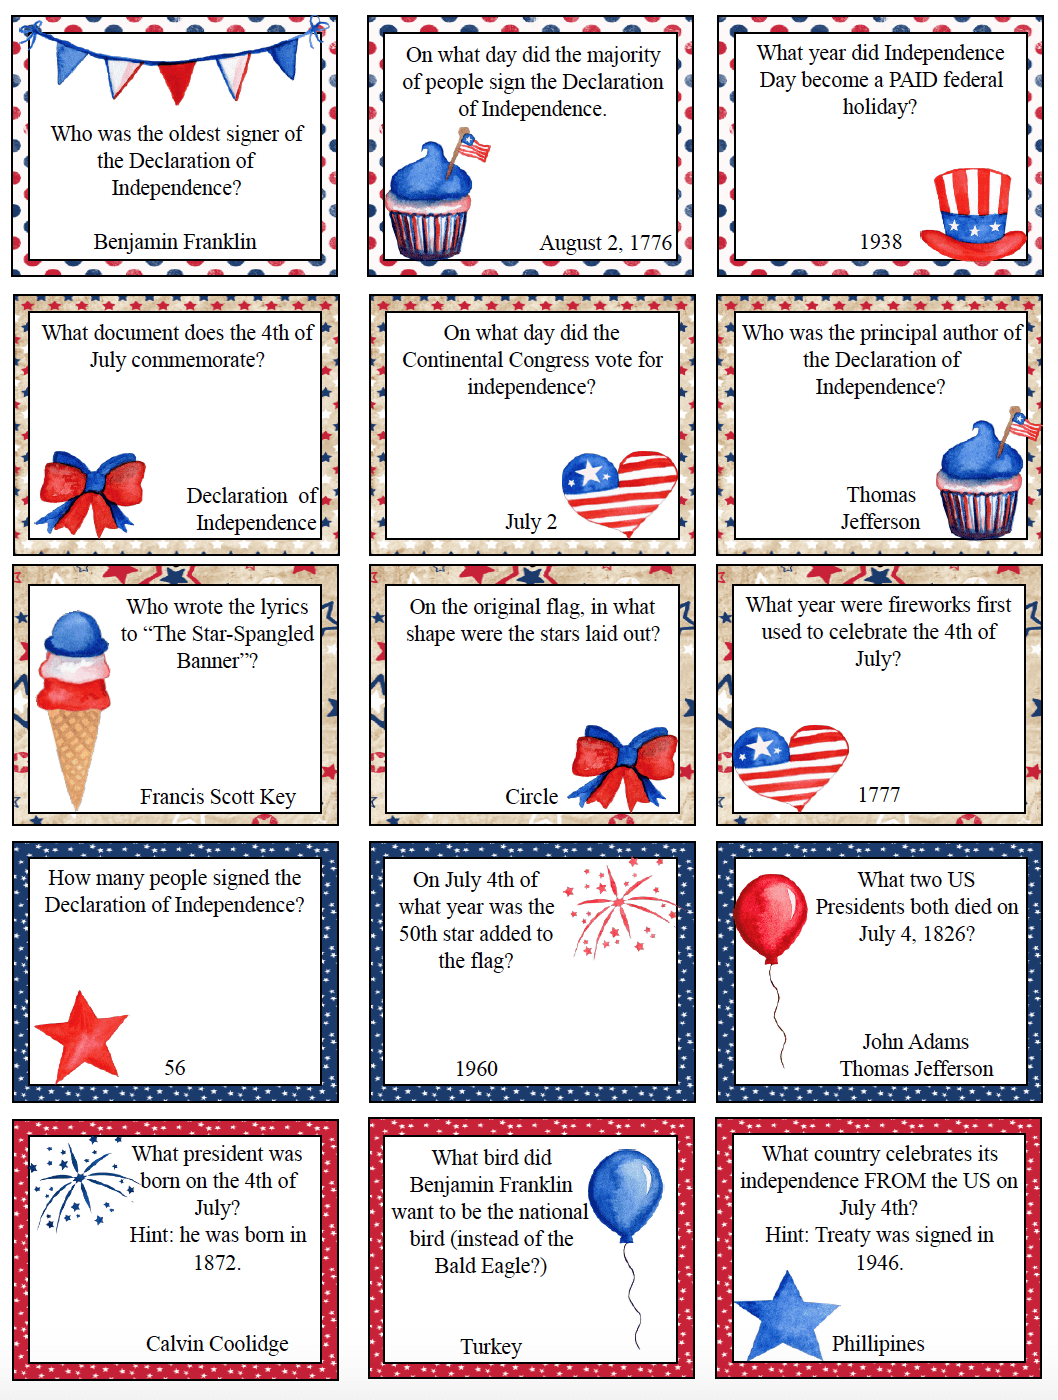 photo about 4th of July Trivia Printable titled Free of charge Printable 4th of July Trivia